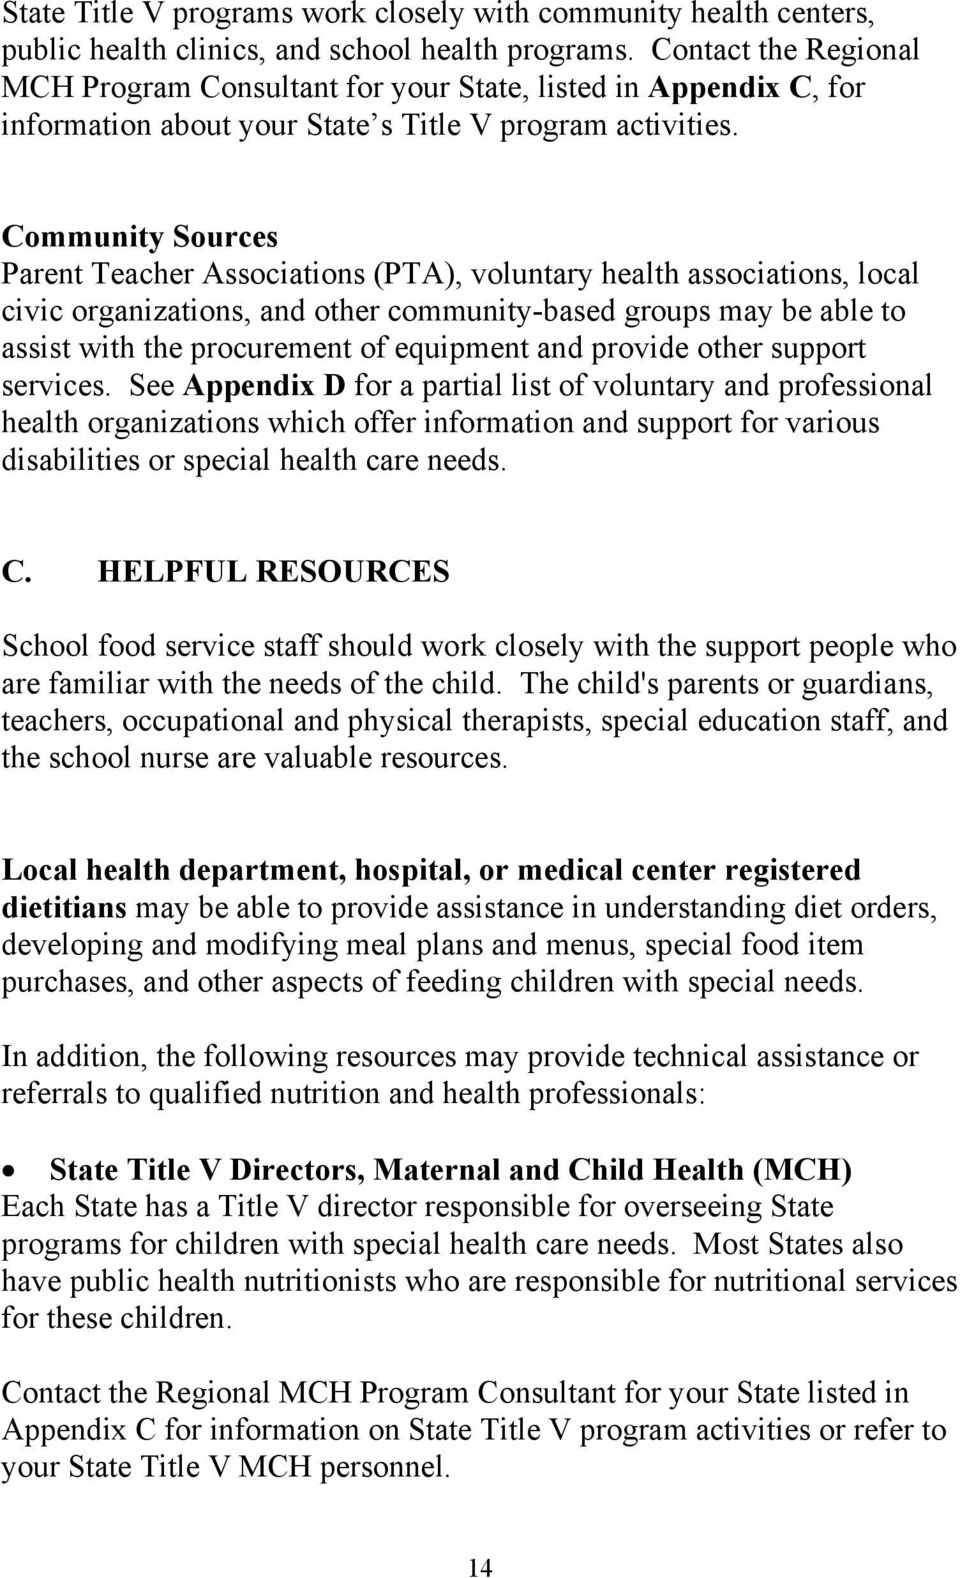 Community Sources Parent Teacher Associations (PTA), voluntary health associations, local civic organizations, and other community-based groups may be able to assist with the procurement of equipment